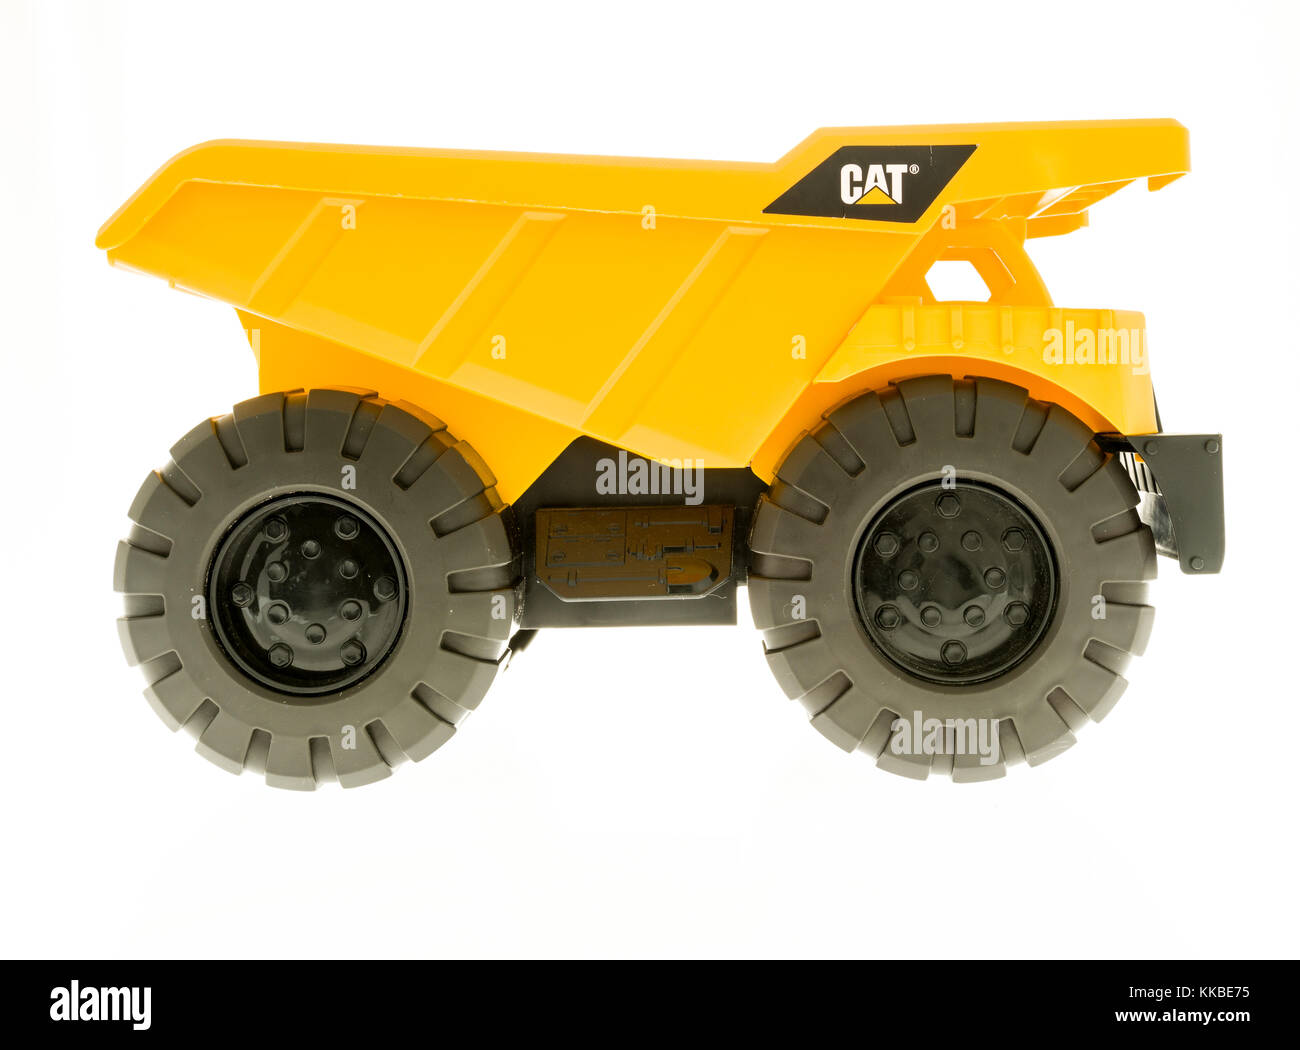 Toys For Trucks Wisconsin : Cat dump truck stock photos images